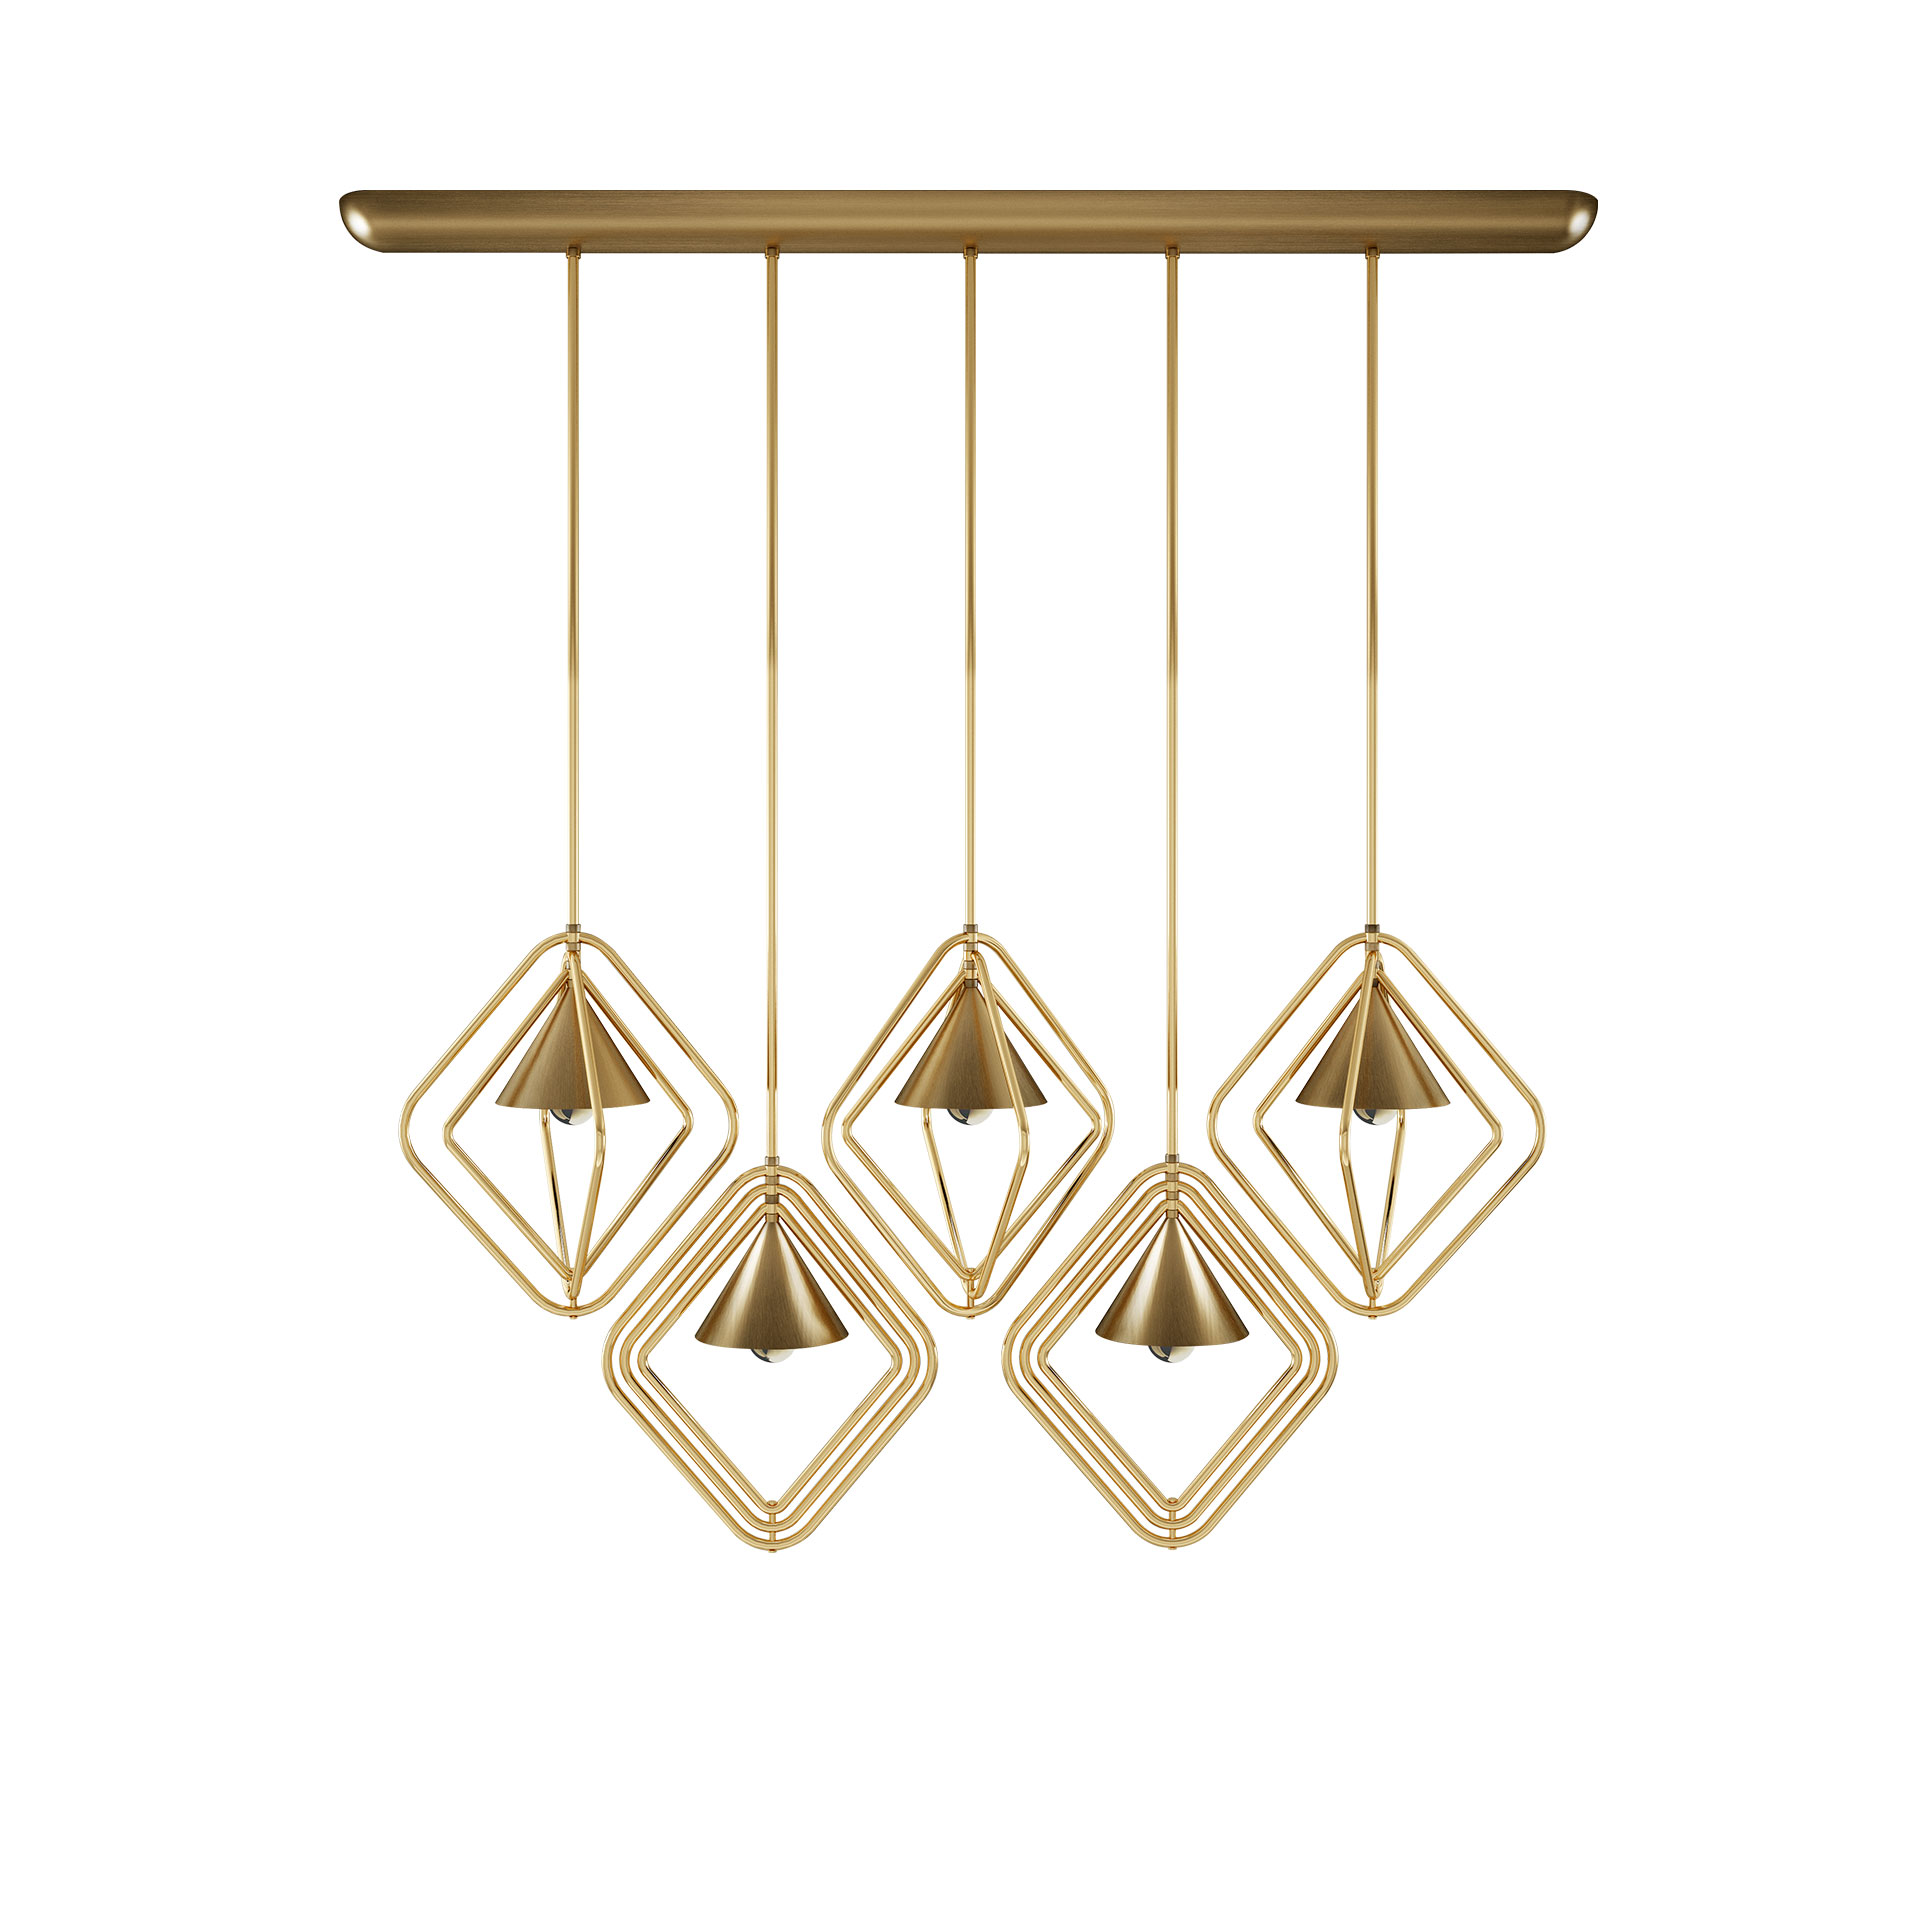 Portman Suspension Lamp